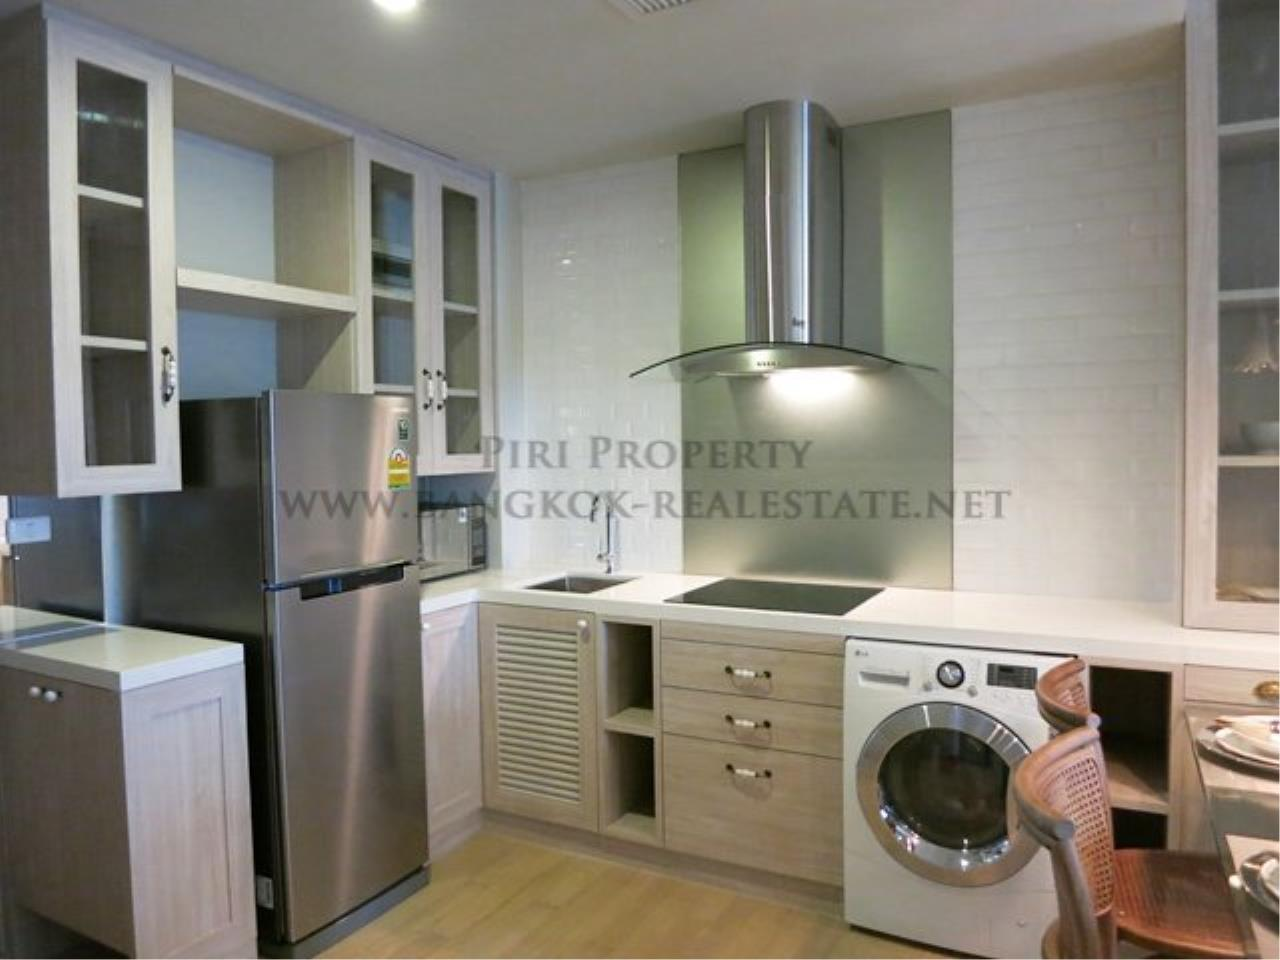 Piri Property Agency's 23rd Floor - Noble Refine - Nicely furnished 1 bedroom Condo 5